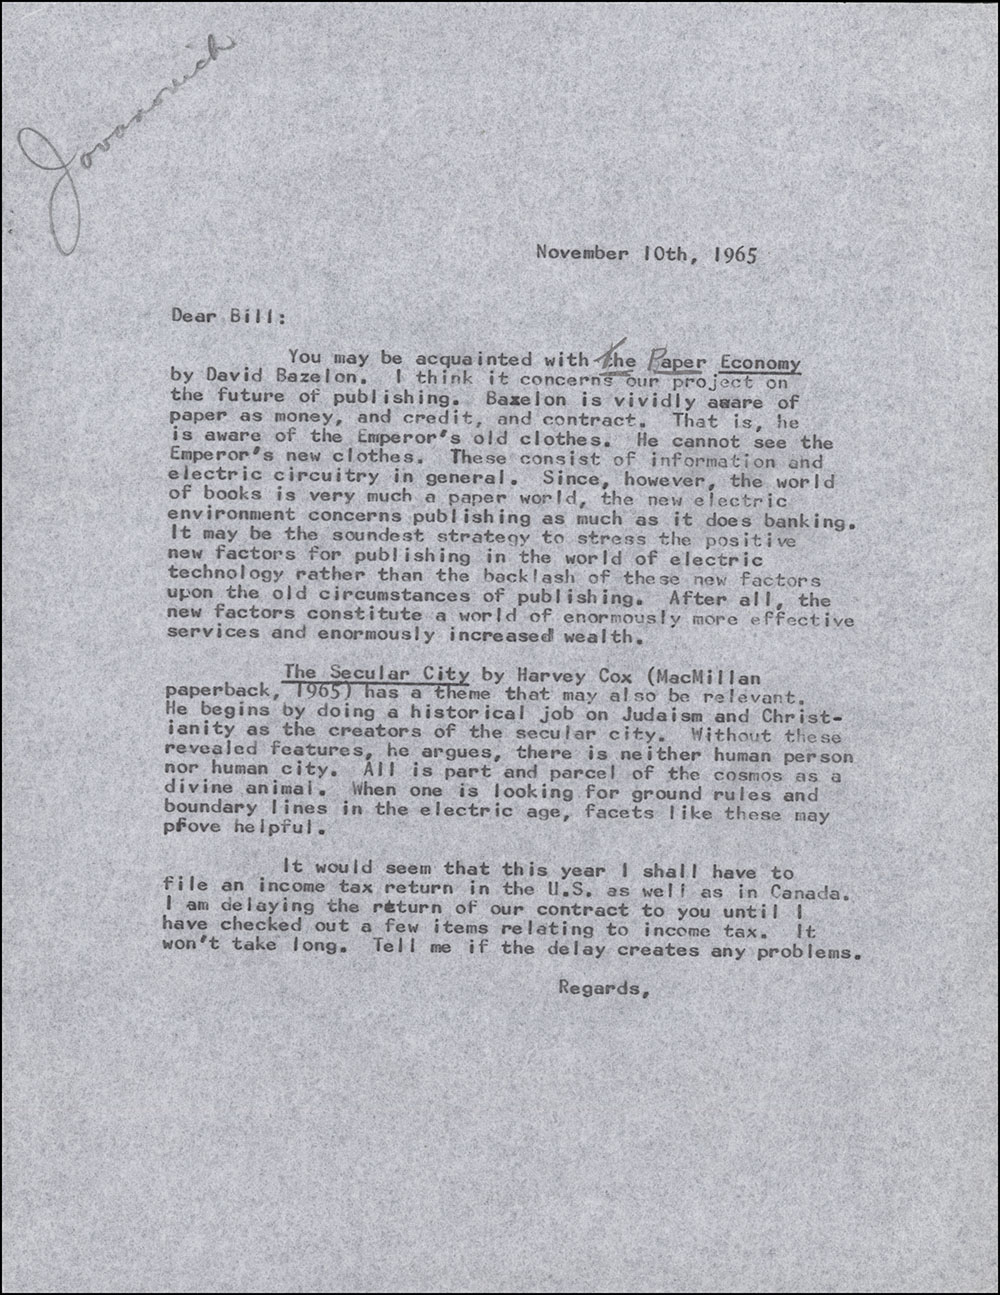 Letter dated November 10, 1965 to William Jovanovich